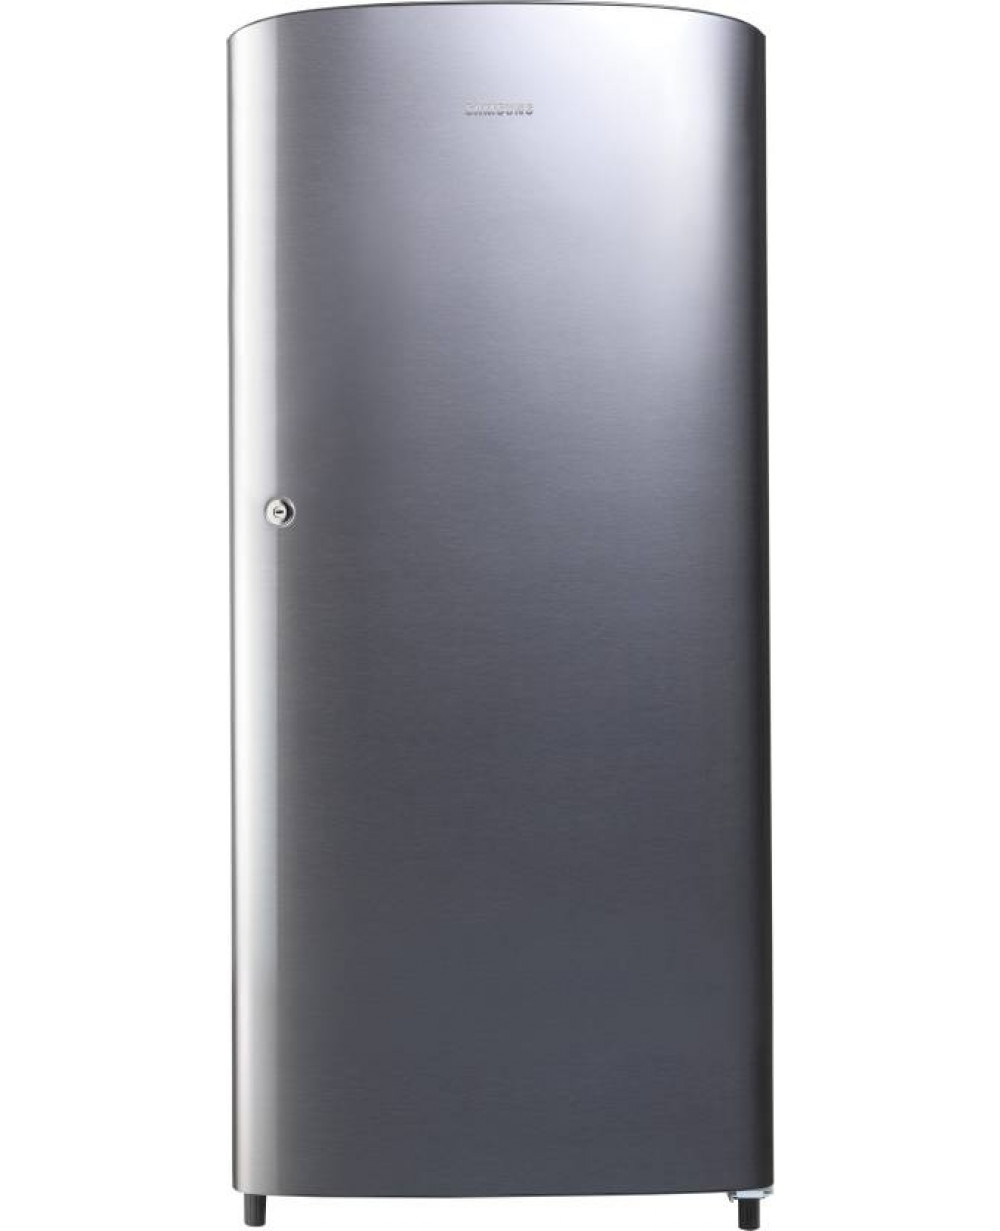 Samsung 190 L Single Door Refrigerator Rr19m2102se